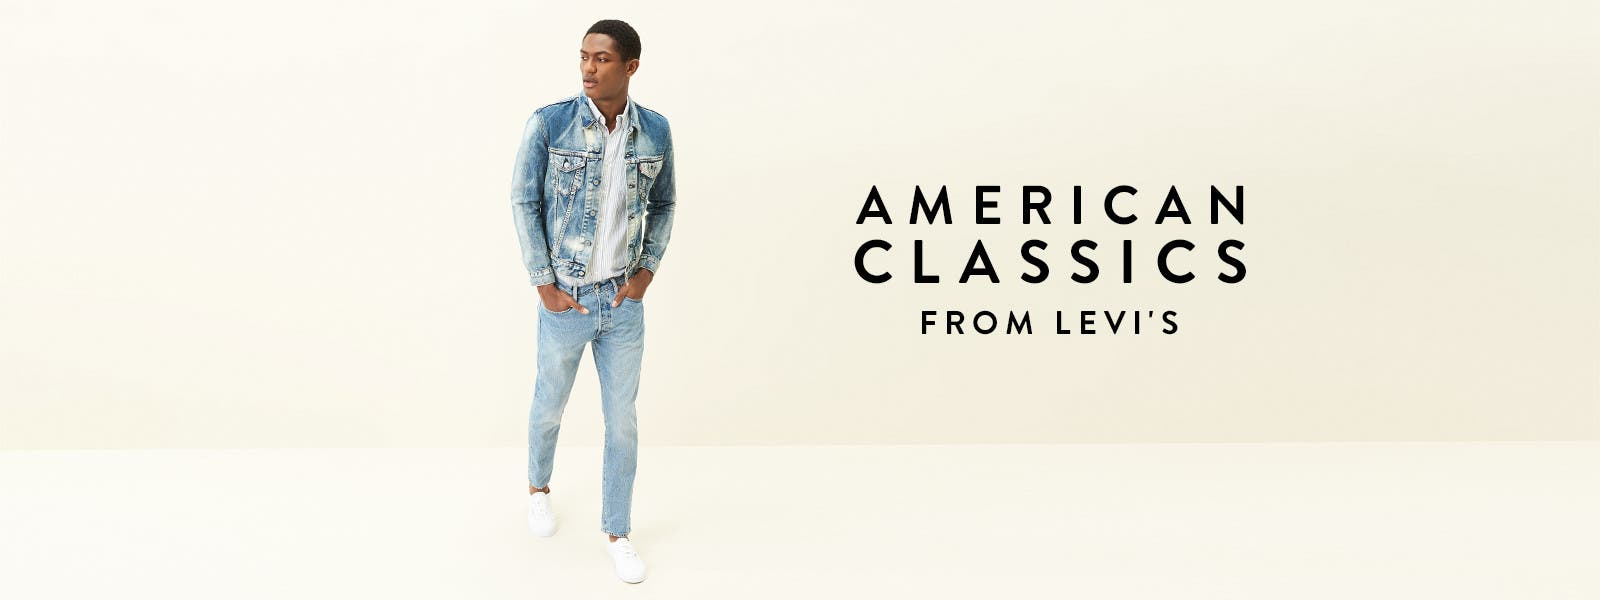 American classics from Levi's.